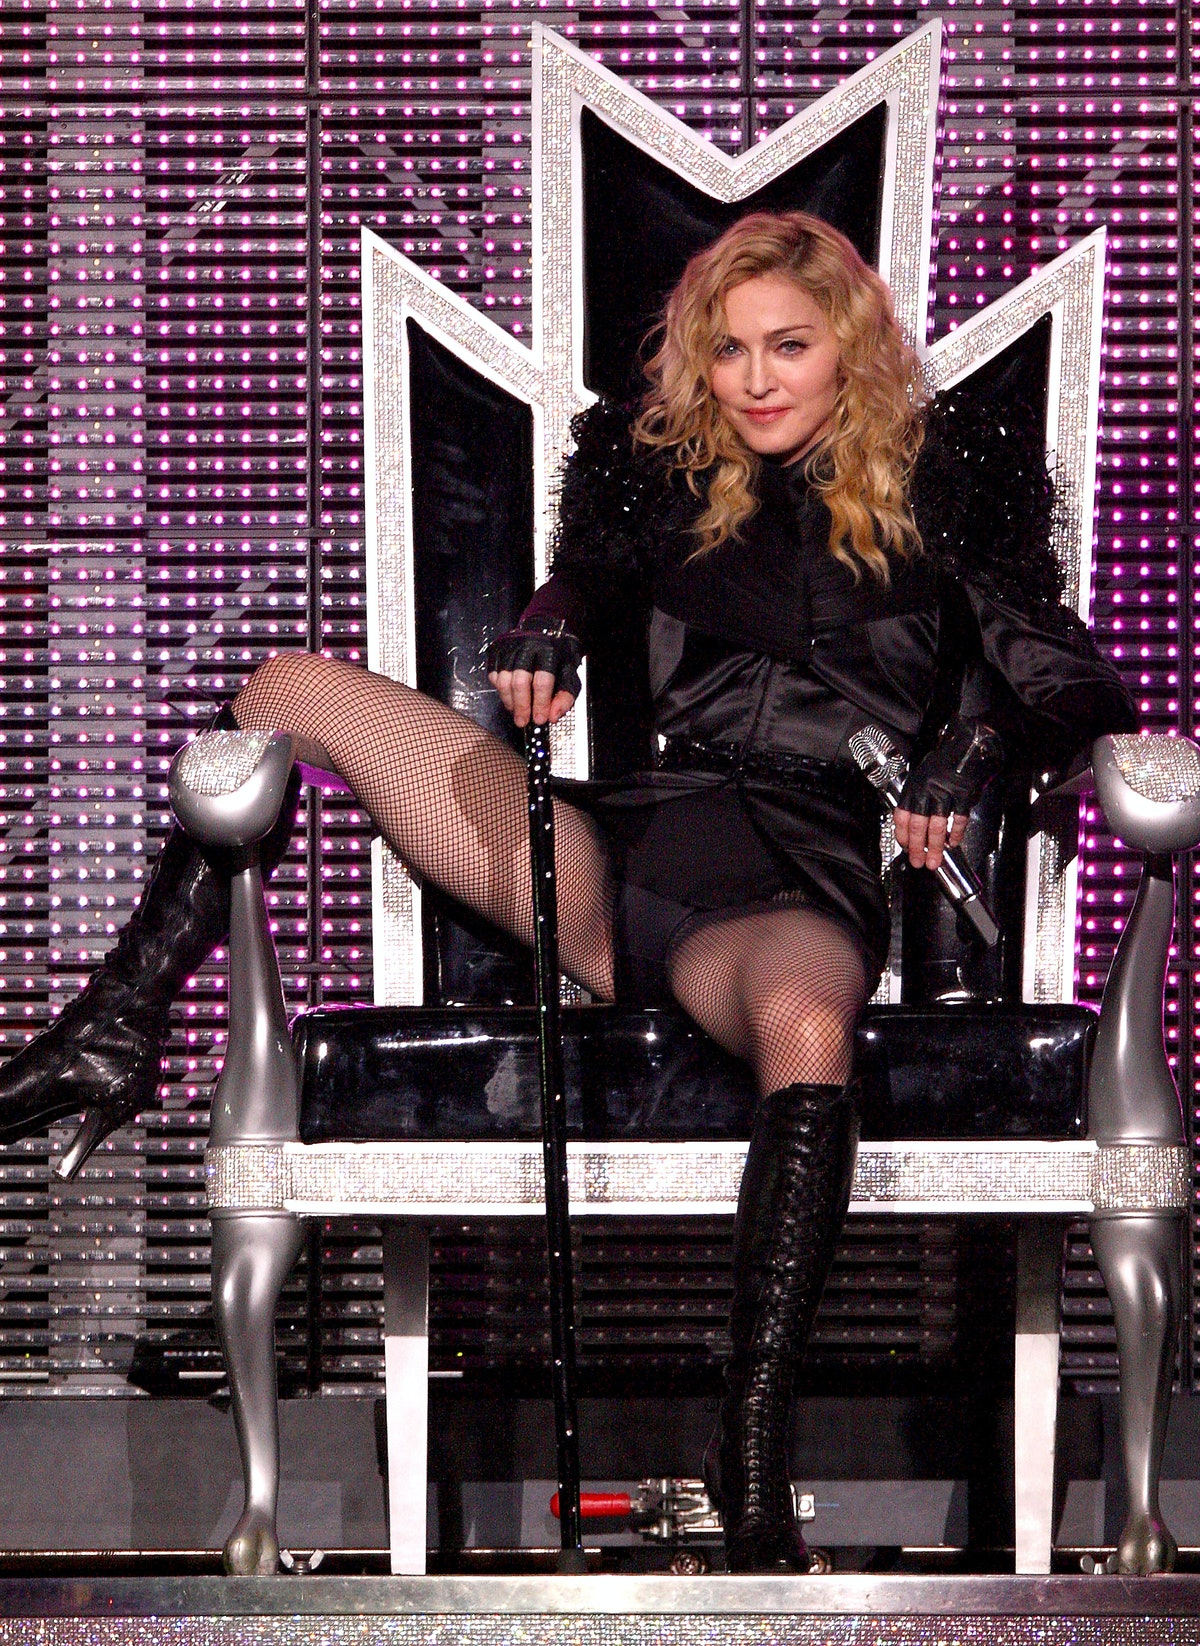 Madonna sits on a throne on stage.